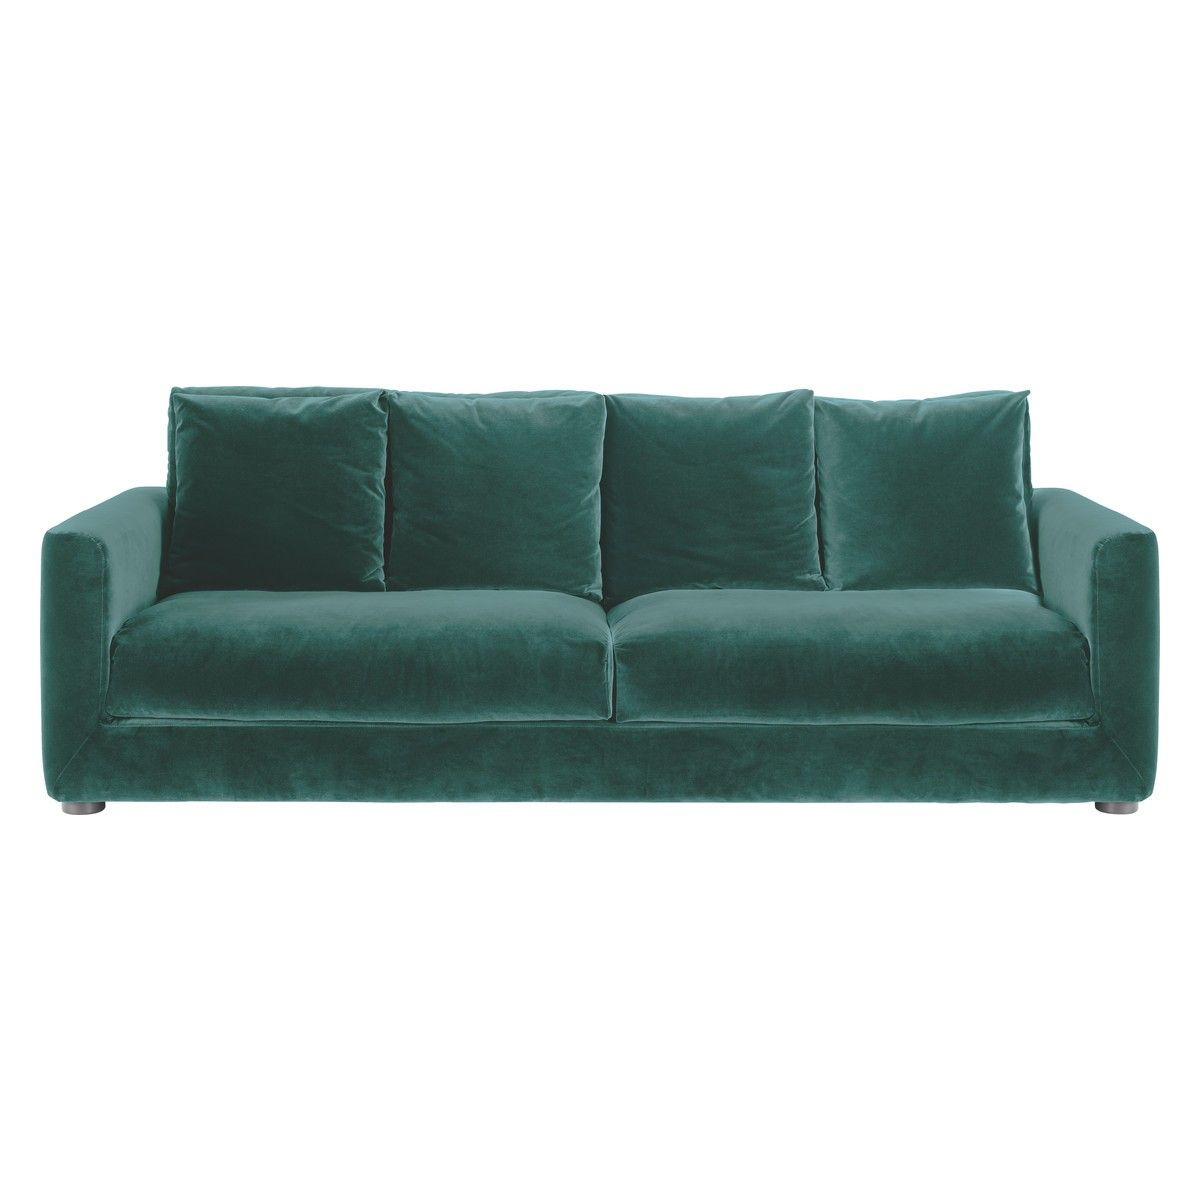 sofa bed green velvet sofas 4 less reviews uk rupert emerald 3 seater buy now at